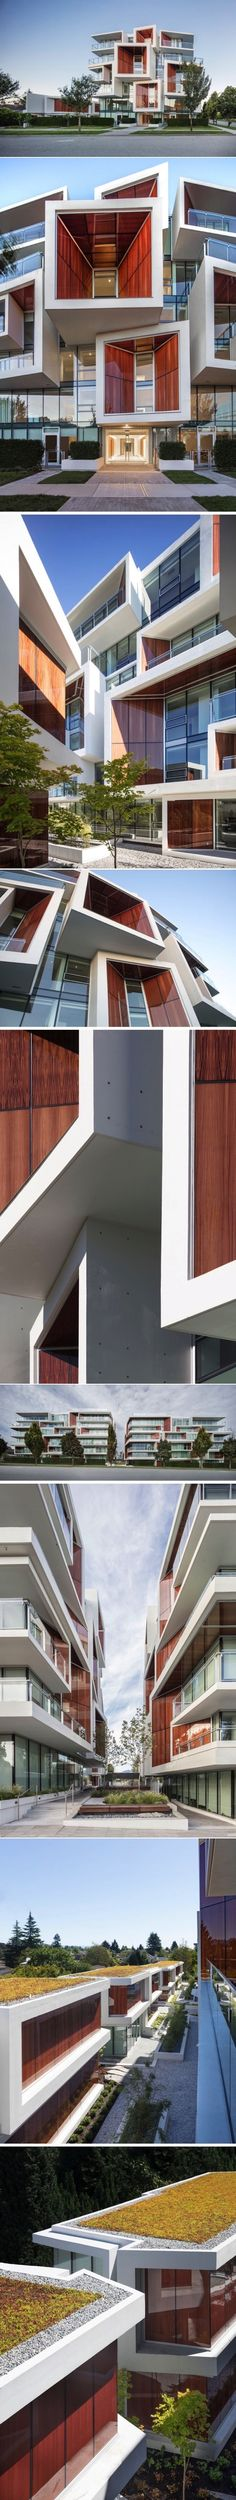 his New Building Features Wood That's Been Framed Inside Glass Panels